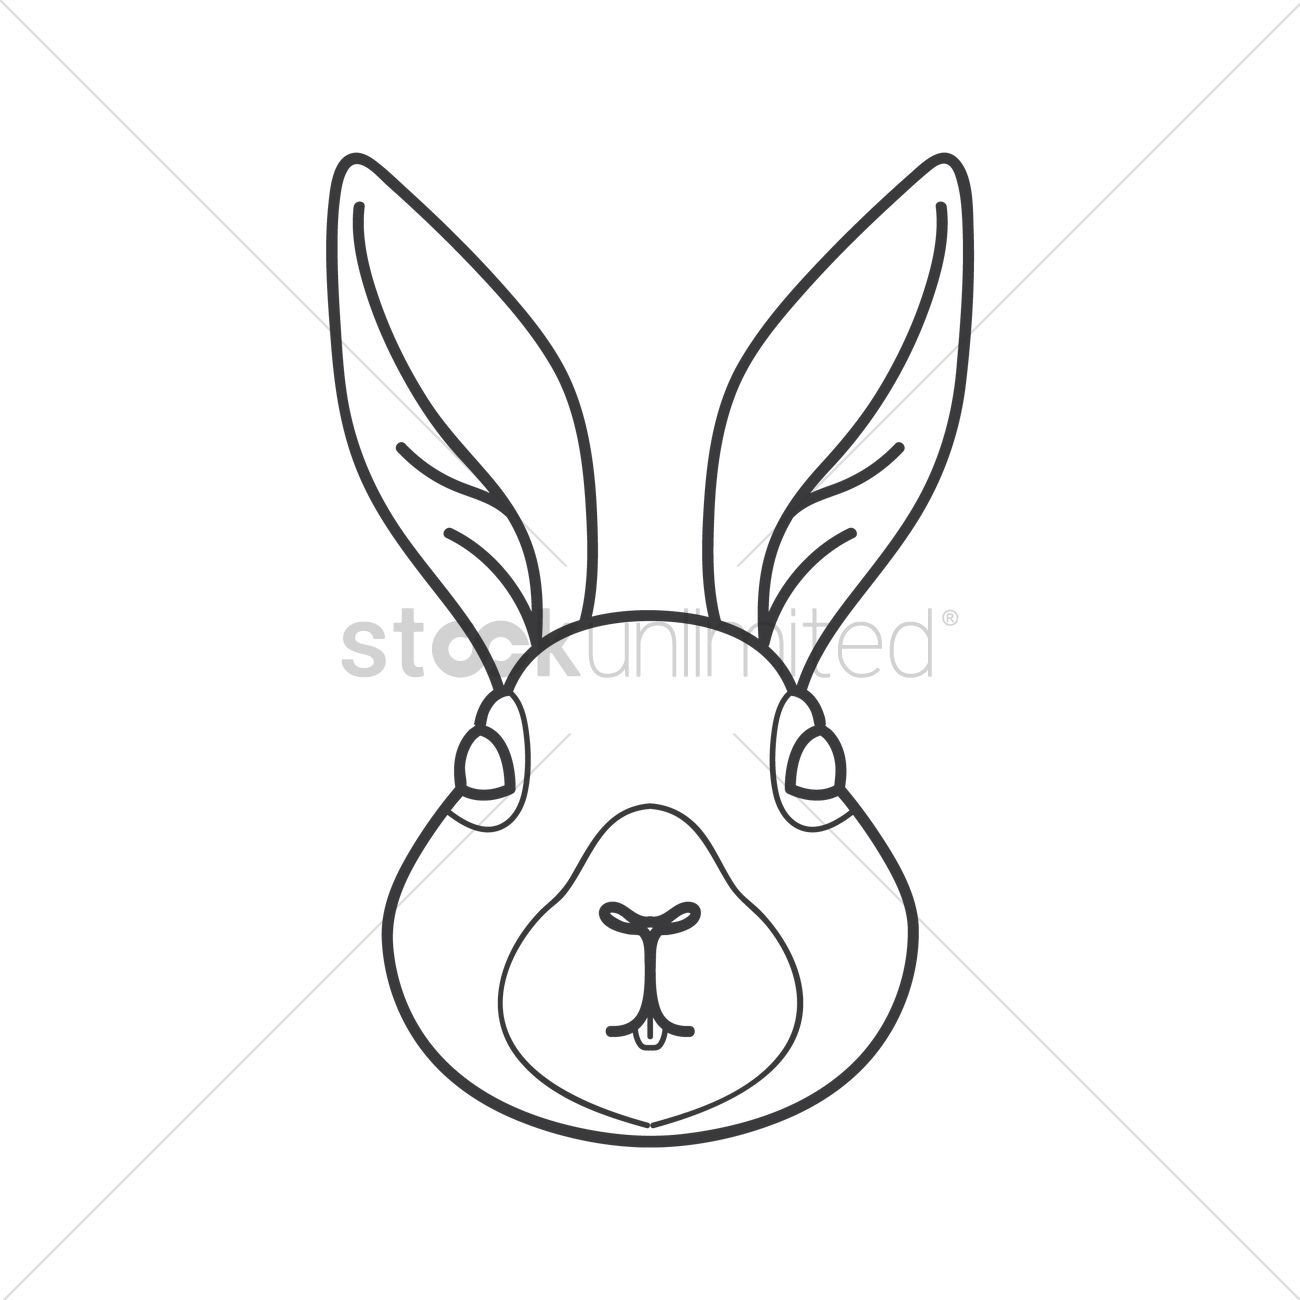 1300x1300 Hare Vector Image